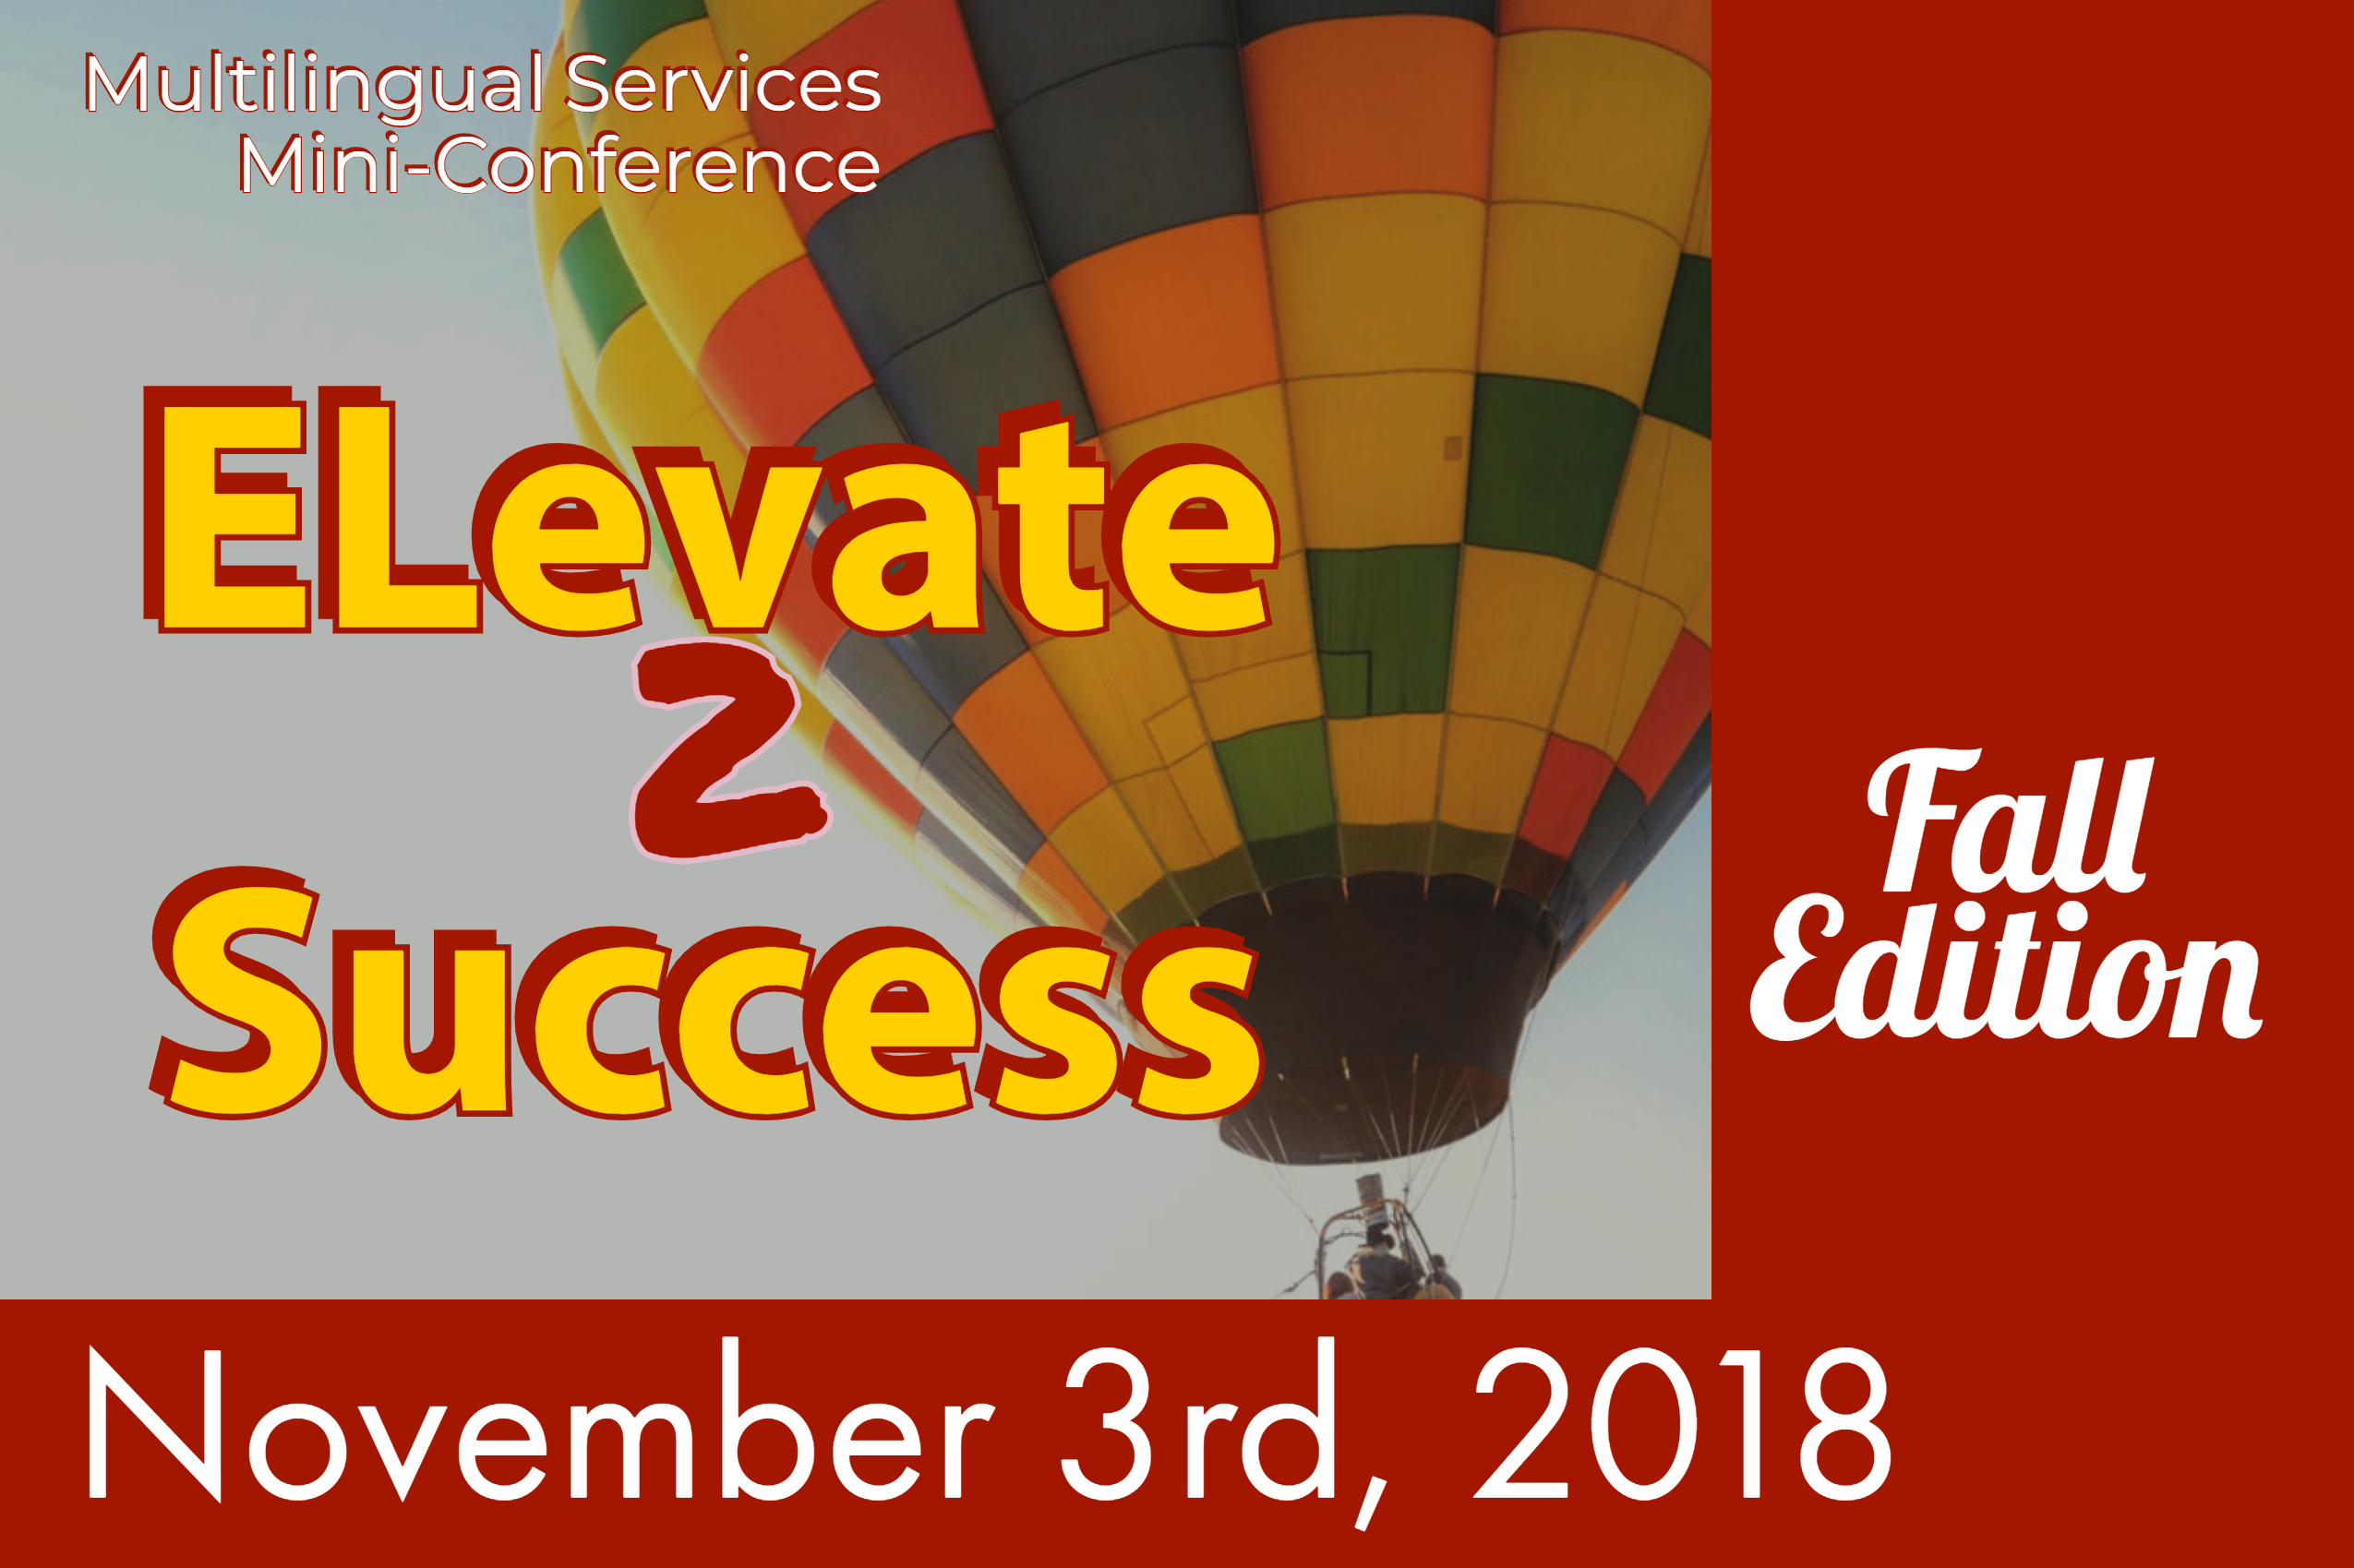 ELevate to Success: Fall Edition